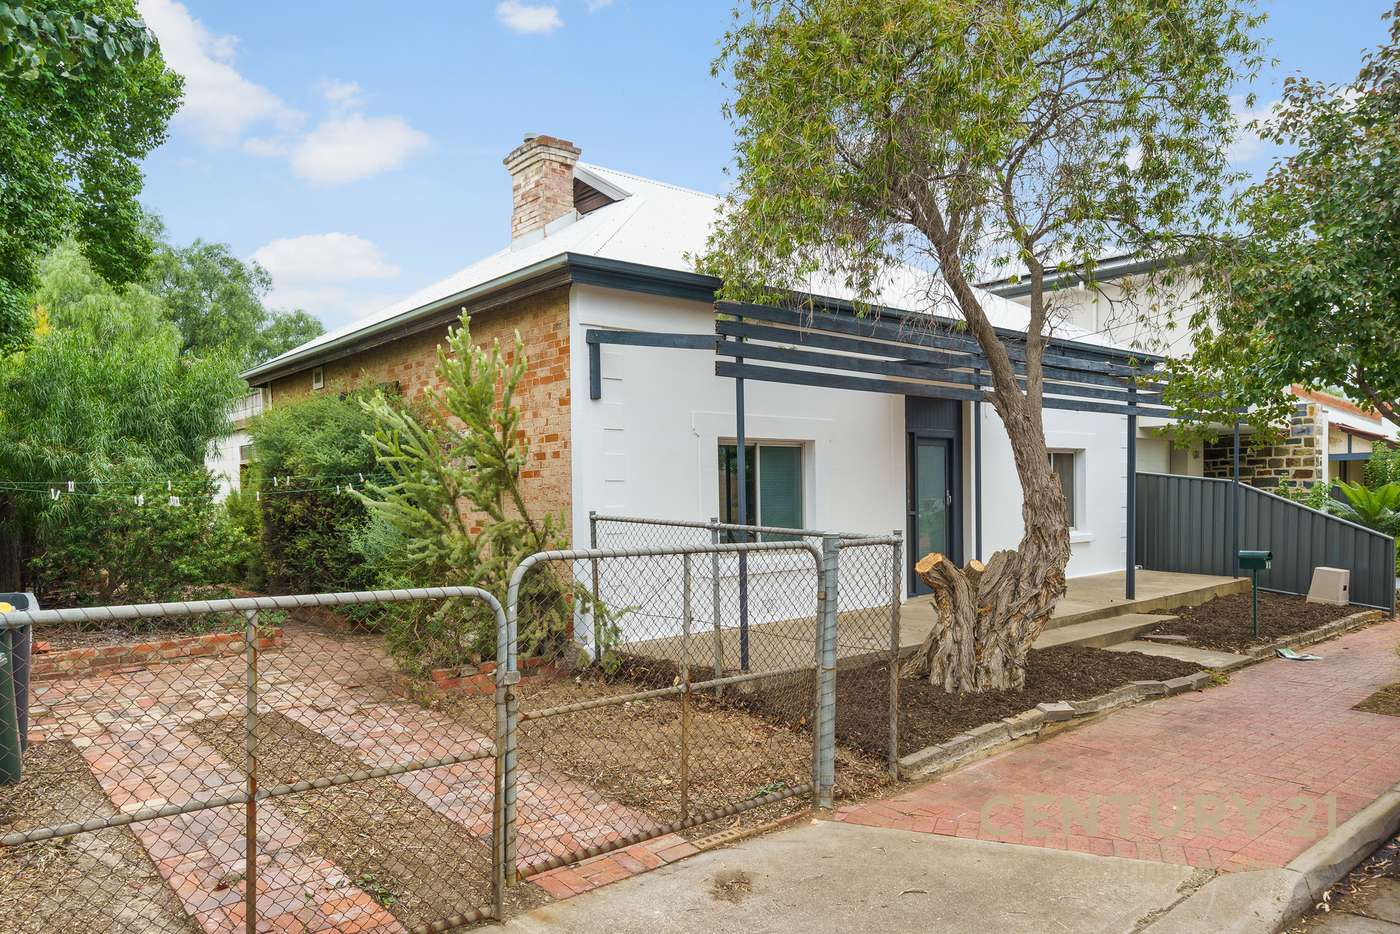 Main view of Homely house listing, 19 Trembath St, Bowden SA 5007